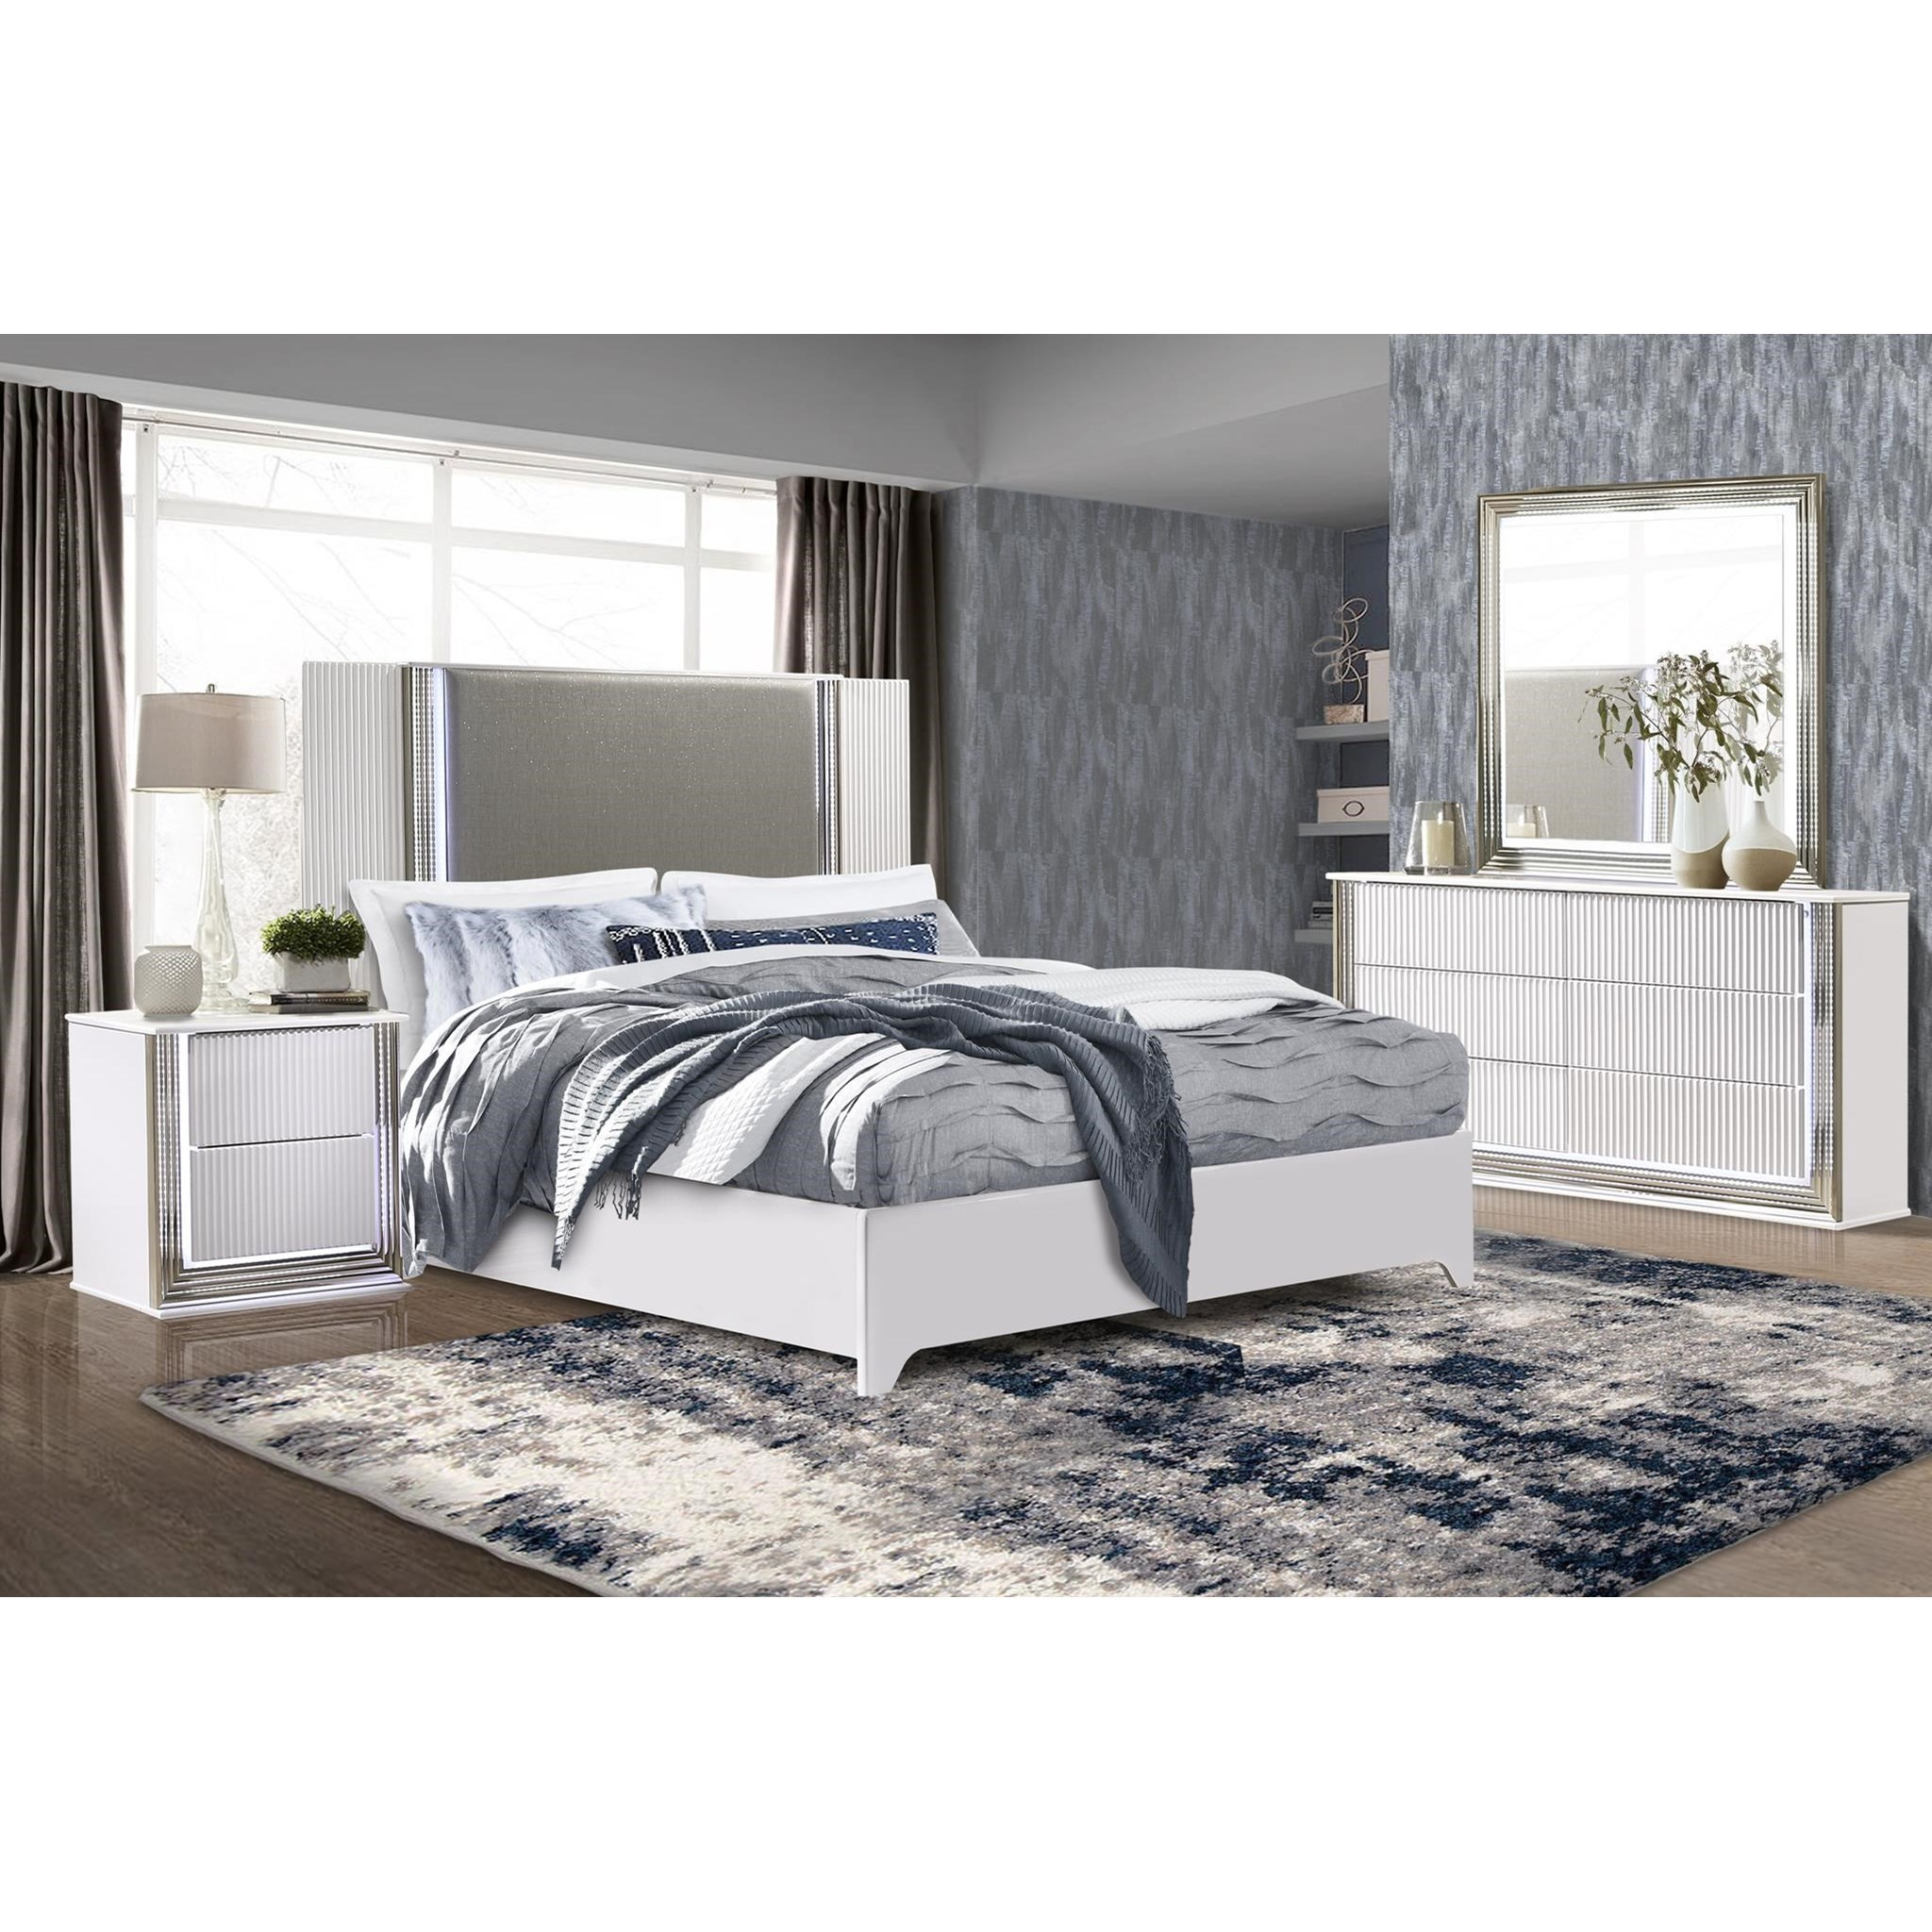 Aspen King Bedroom Group by Global Furniture at Value City Furniture